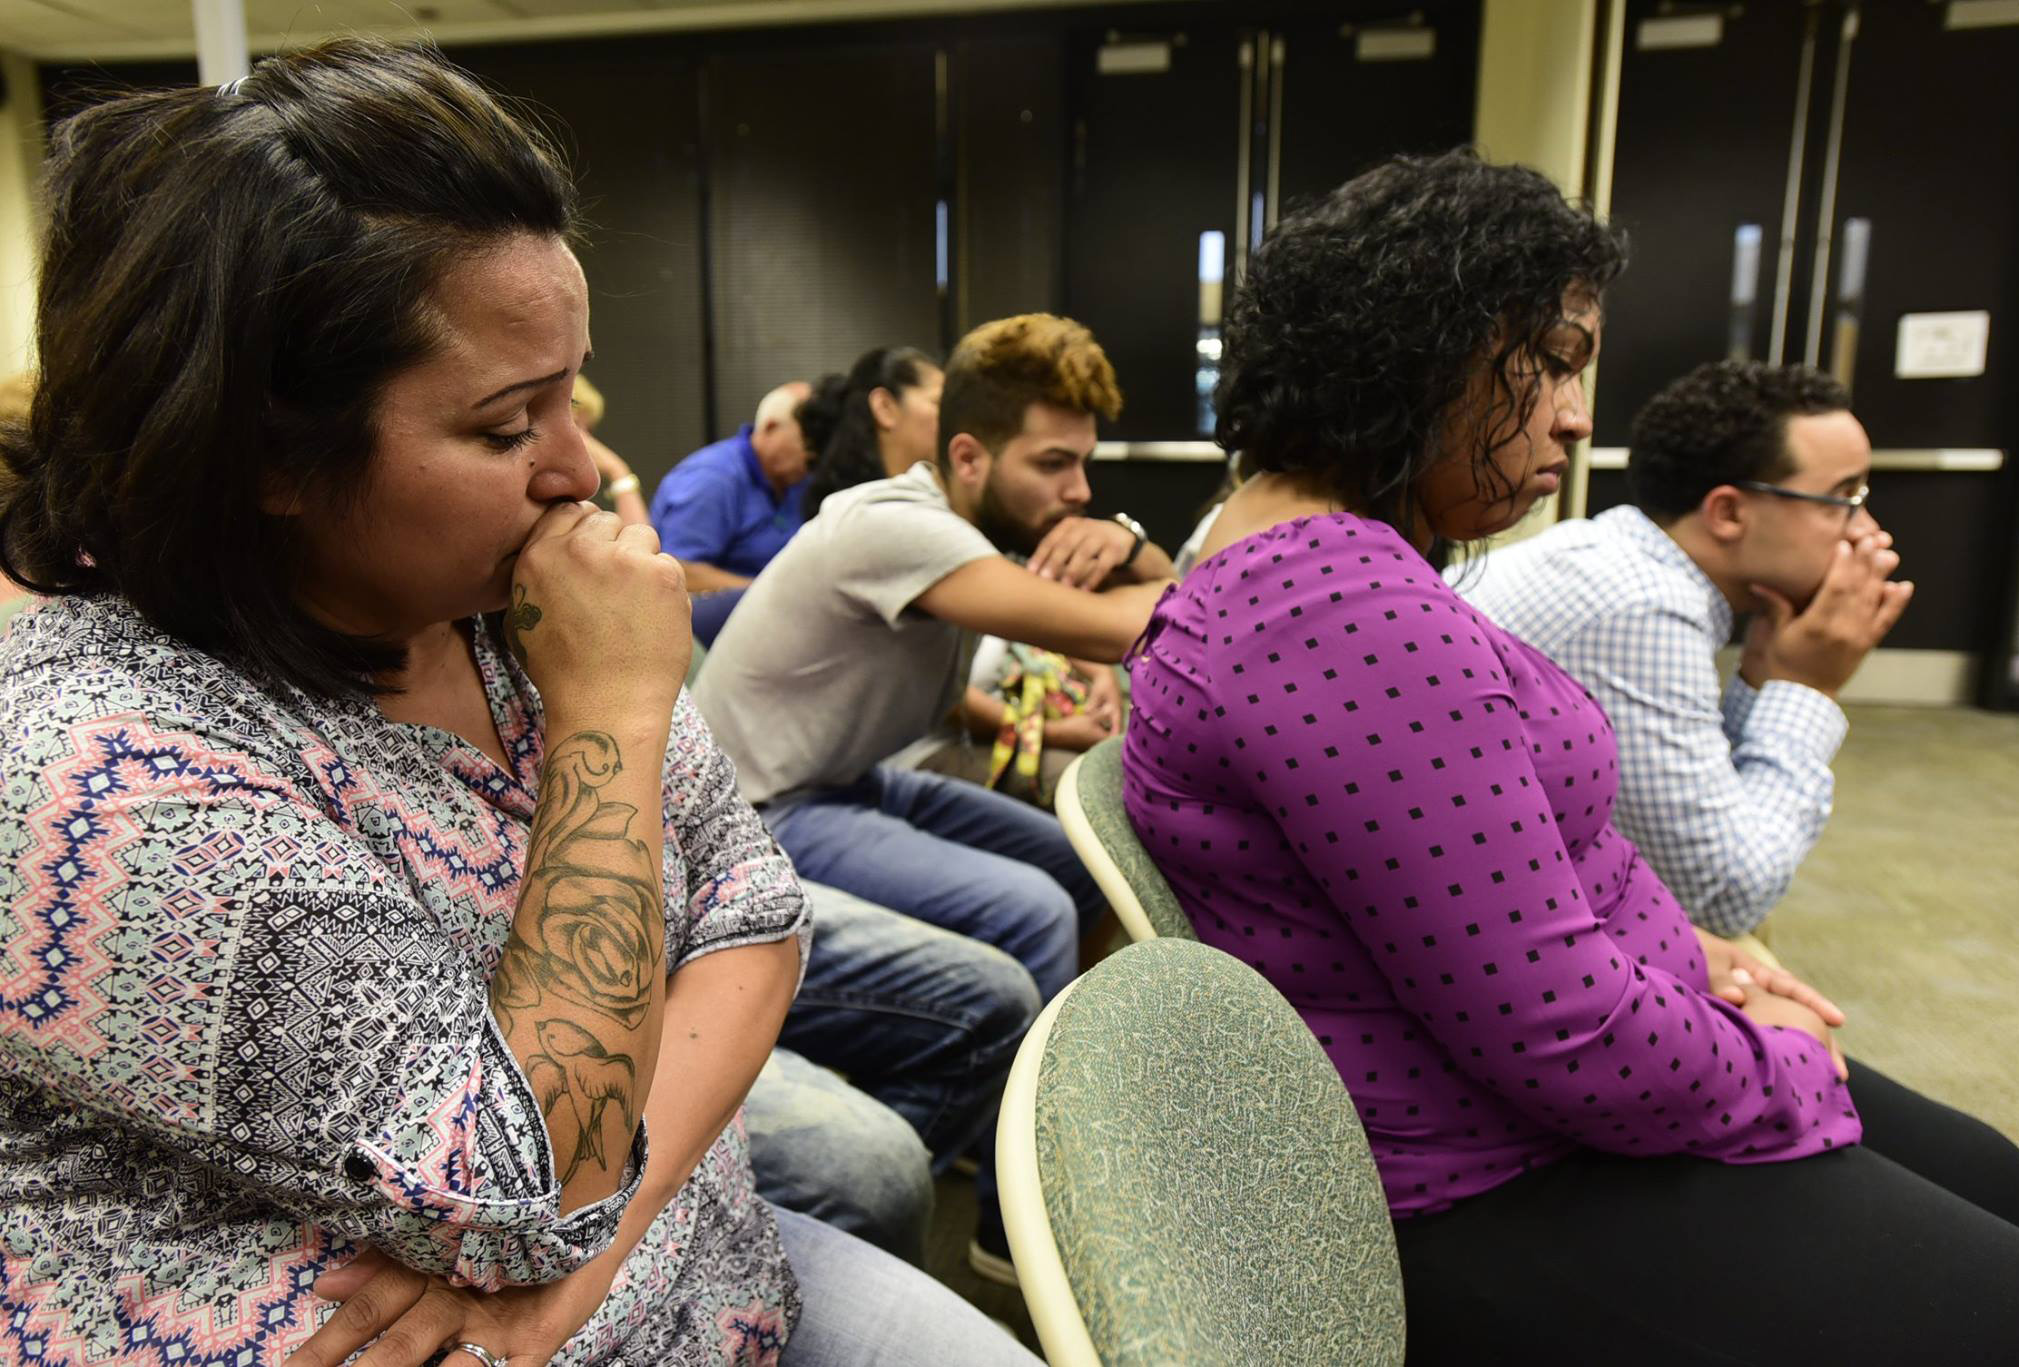 During the trial on Tuesday afternoon, grandmother Yolanda Traylor, from left, uncle Isaih Arriaga, mother Ashlie Arriaga and Talib Garret listen to a recording of the defendant Chantal Thoss describe the baby's injuries to Clyde police detective Brian Weaver. Thoss is charged with one count of felonious assault and one felony count of endangering a child in connection with injuries sustained by a 6-month-old she was baby-sitting in 2014. The baby suffered seizures, brain hemorrhaging and blurred vision because of bleeding behind the eyes, according to the grandmother, Yolanda Traylor